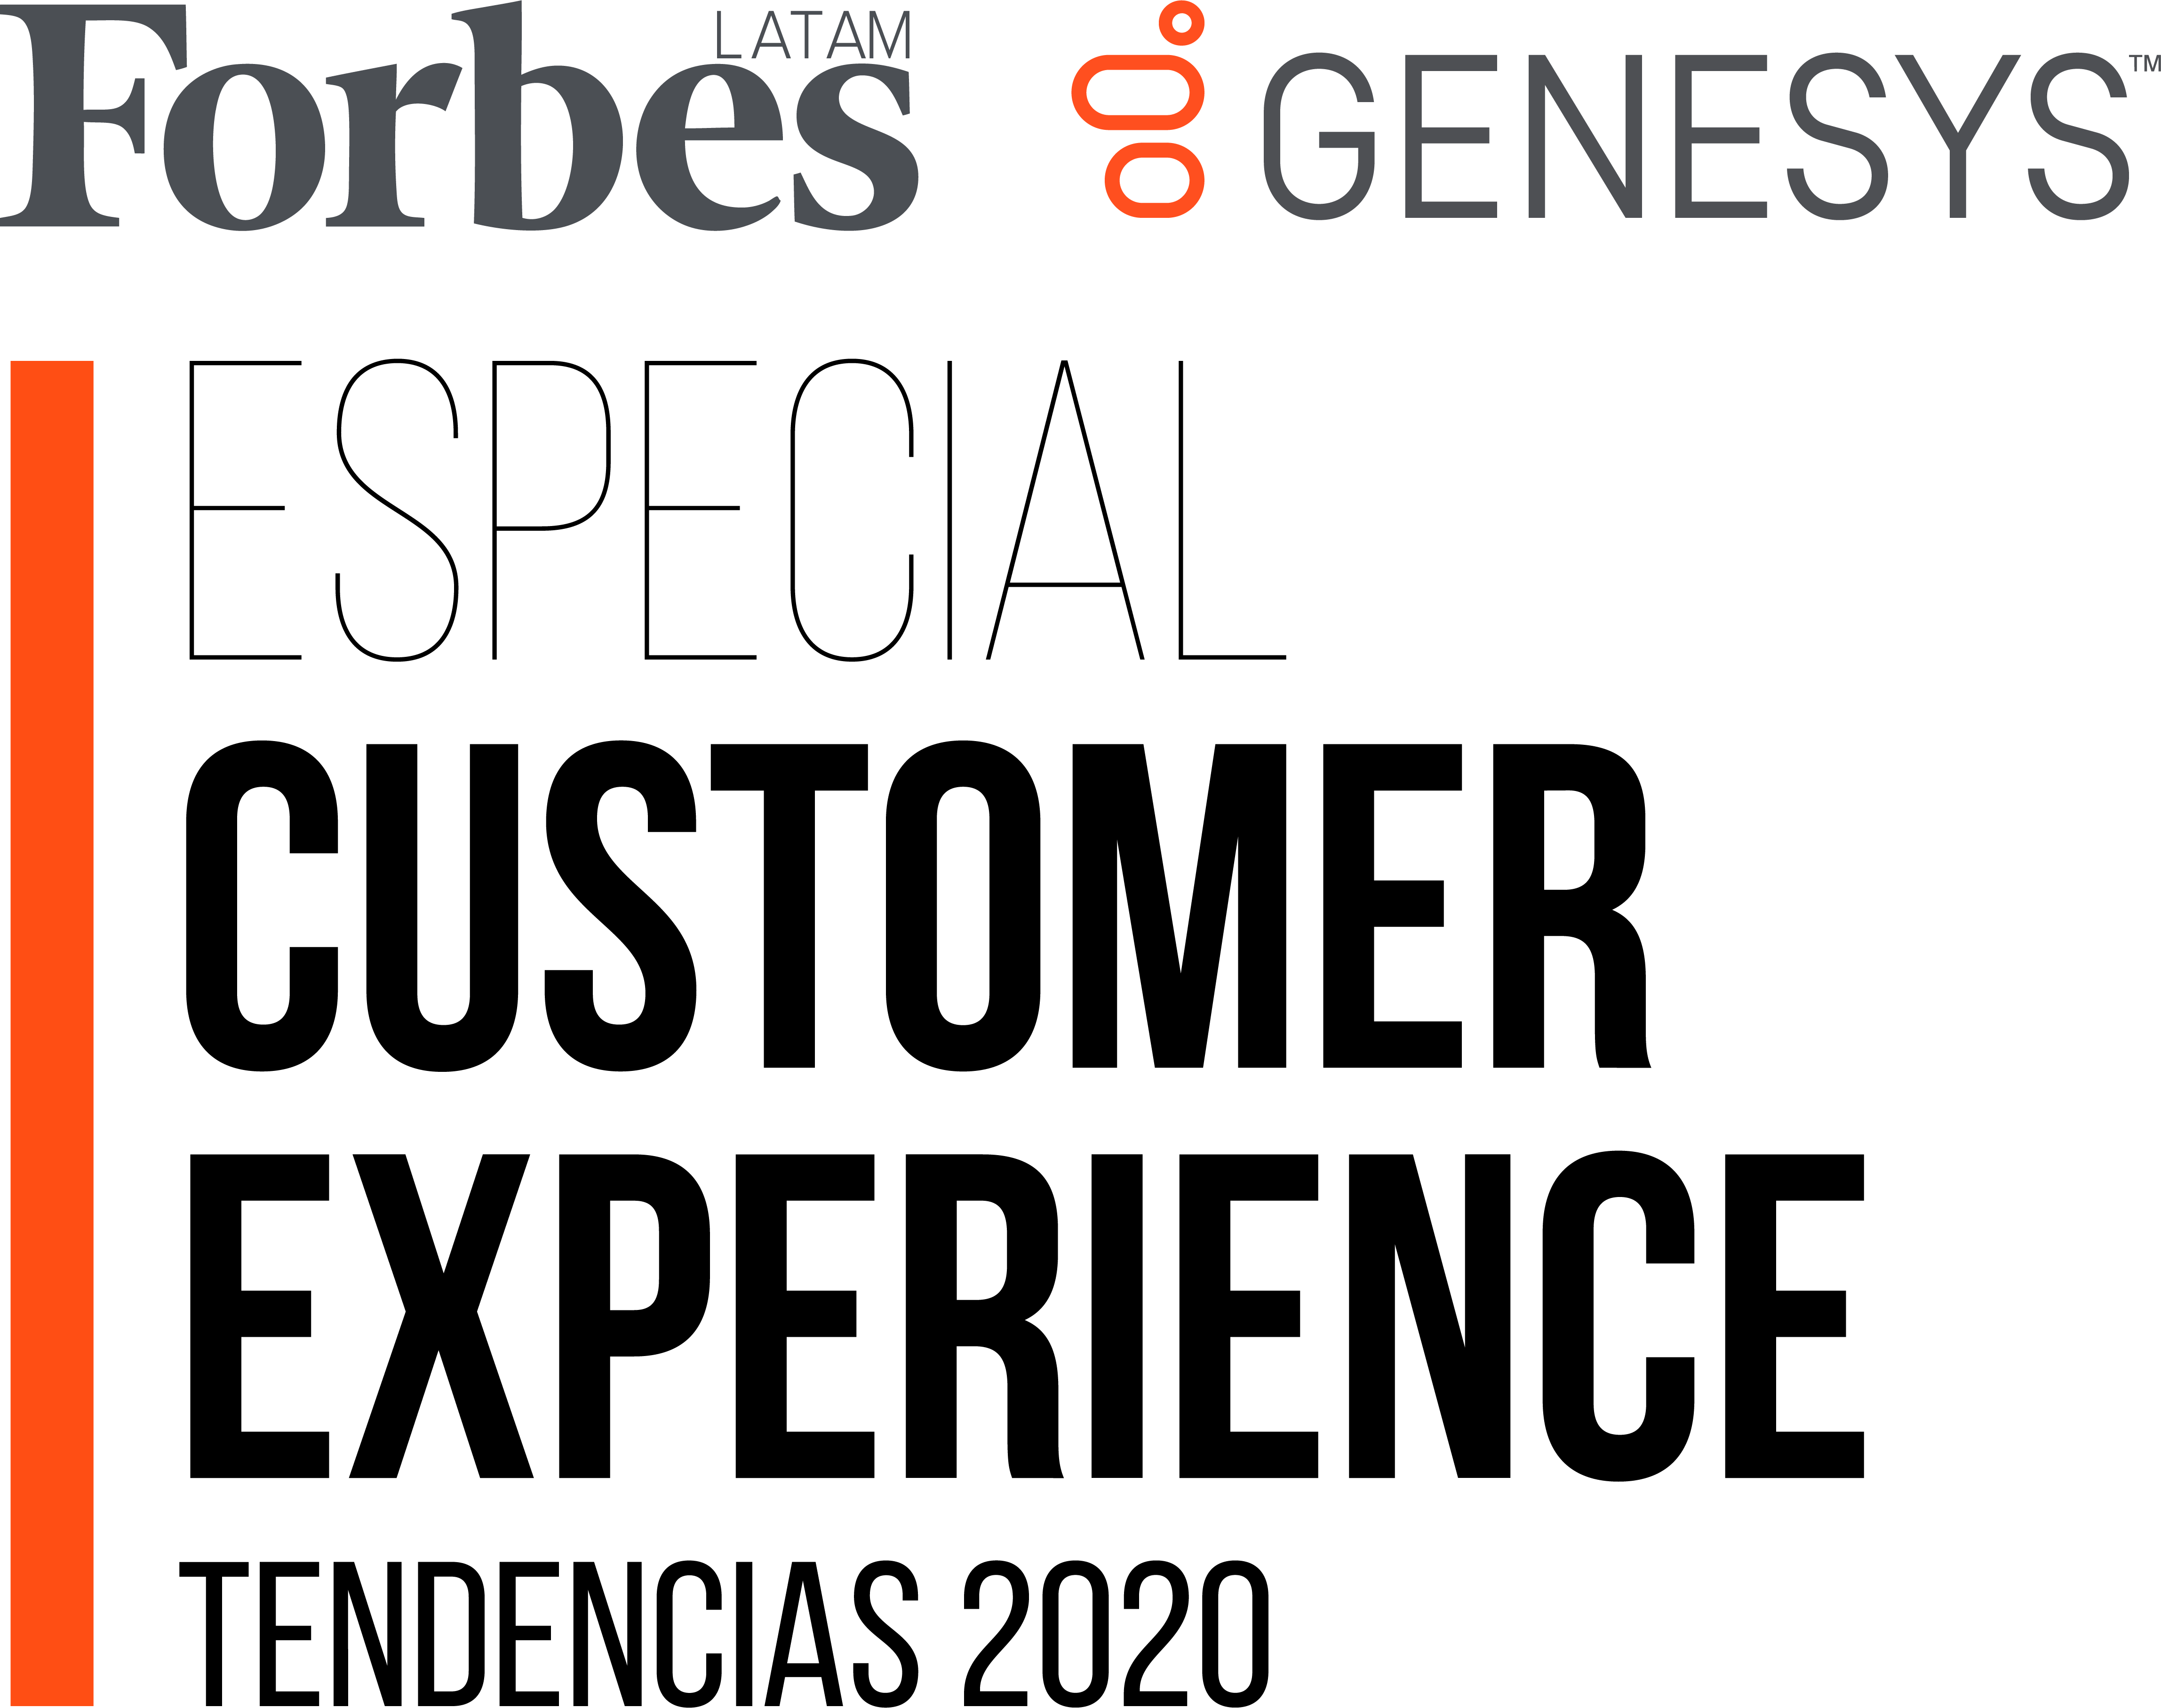 Logo forbes genesys forbes